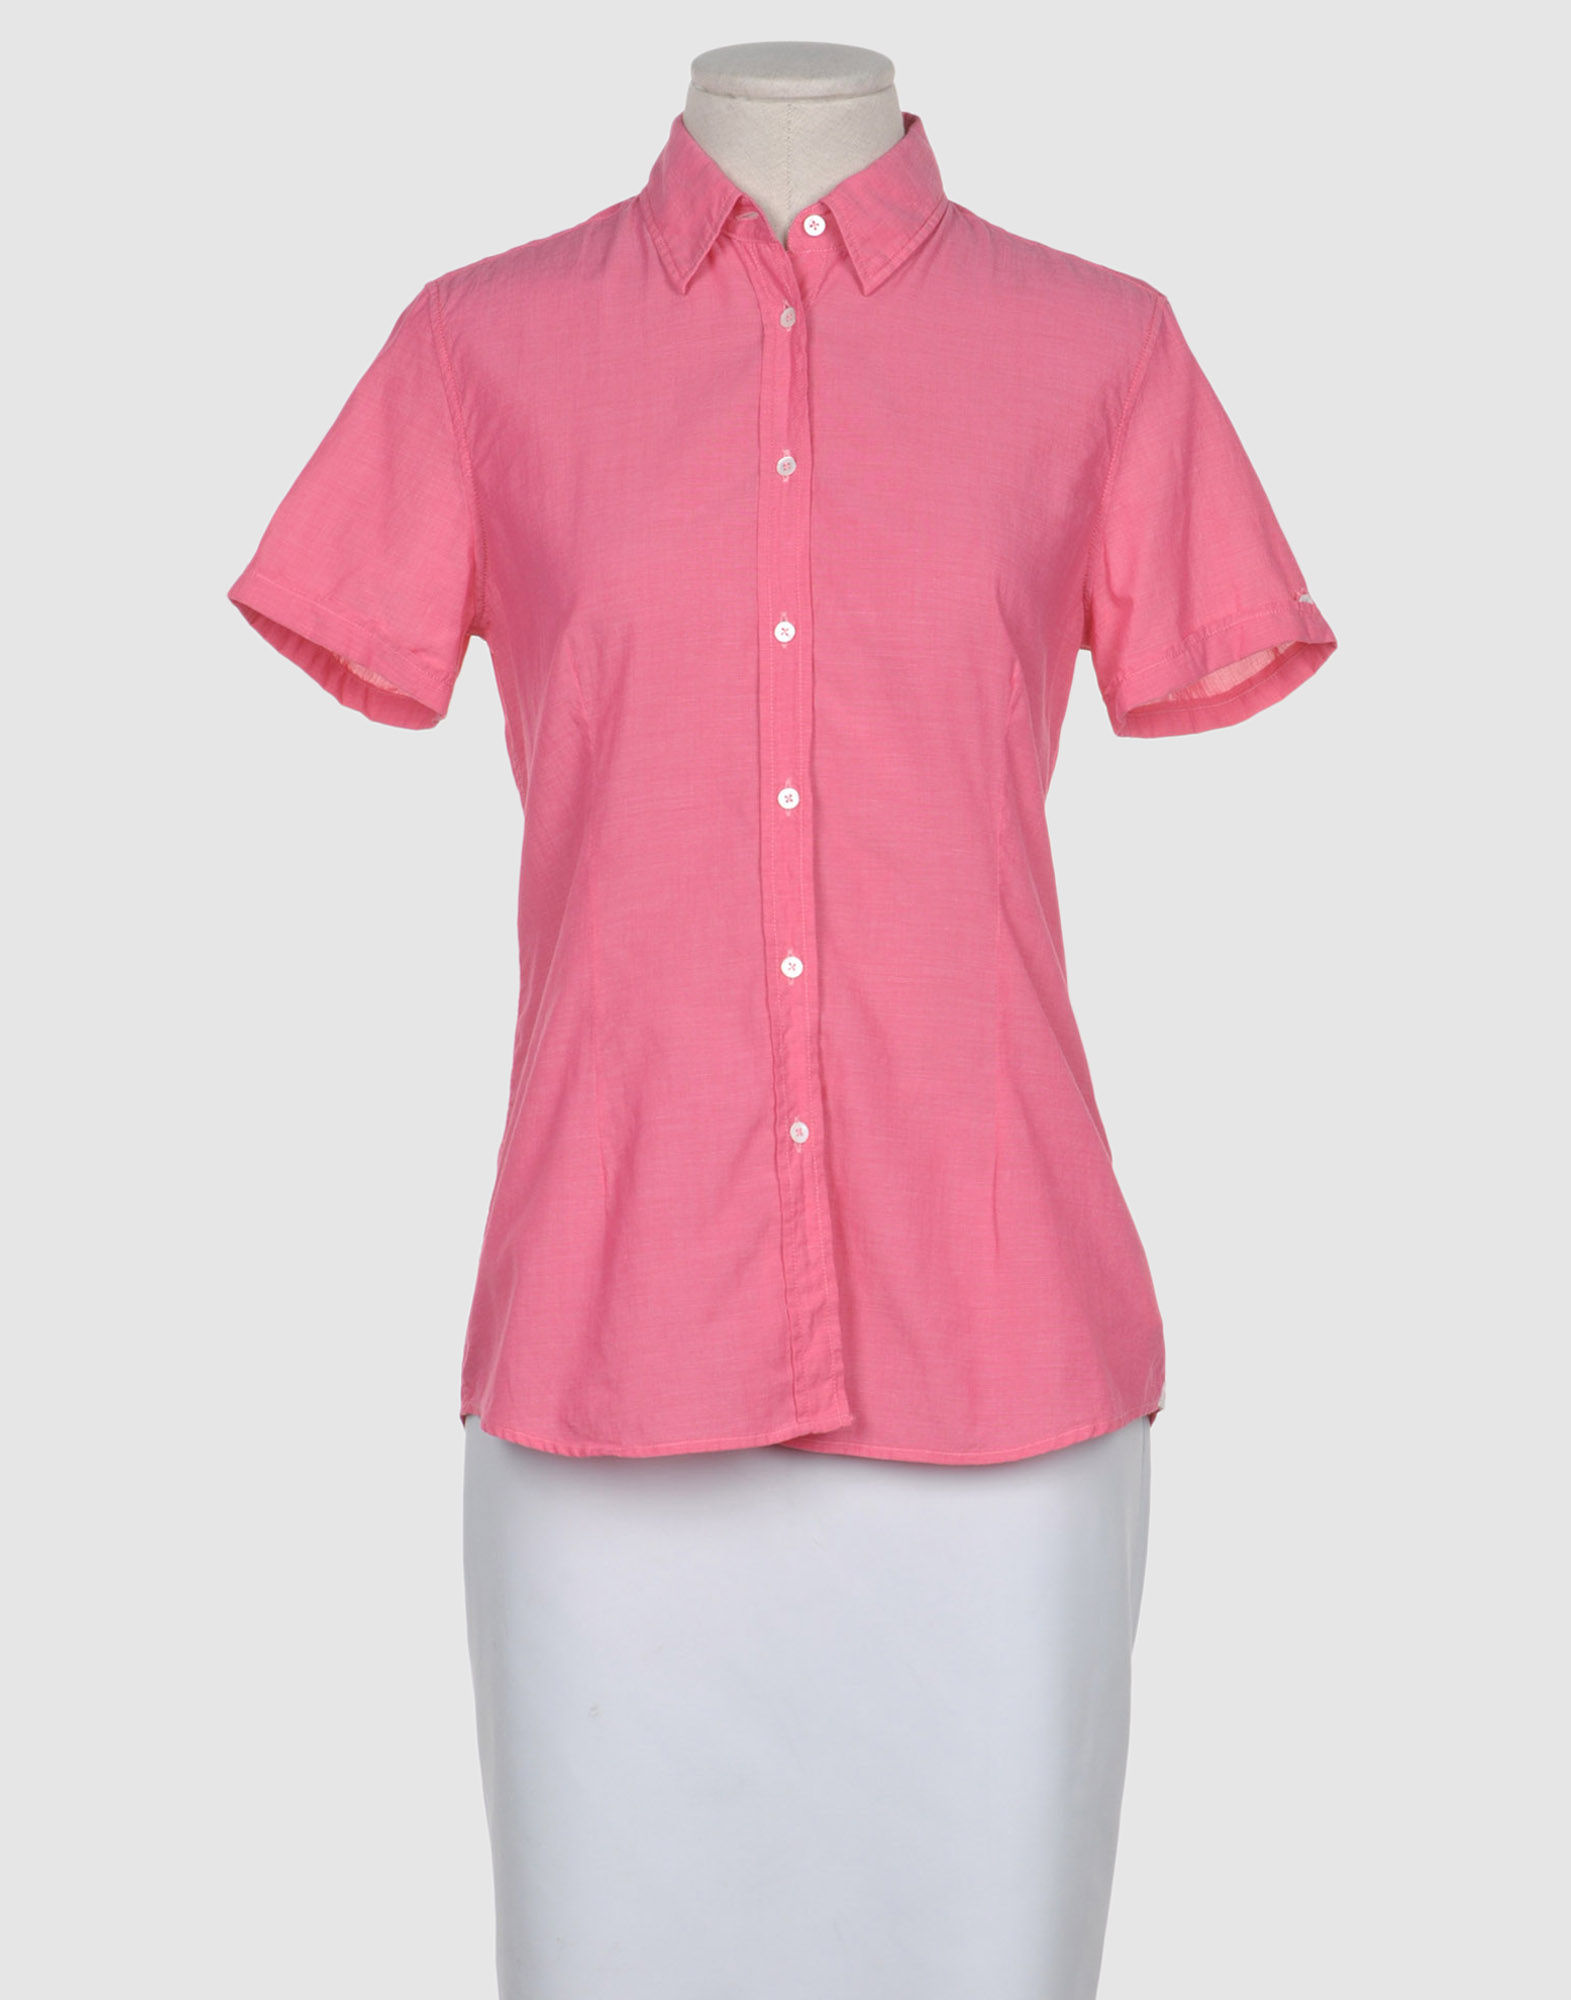 Gingham Womens Short-Sleeve Shirt. Our feminine take on a service industry staple, our short-sleeve gingham button-down gets a fitted update – just in time for summer. Made to flatter with an inverted pleat and added darts, this shirt offers an instant wardrobe upgrade.